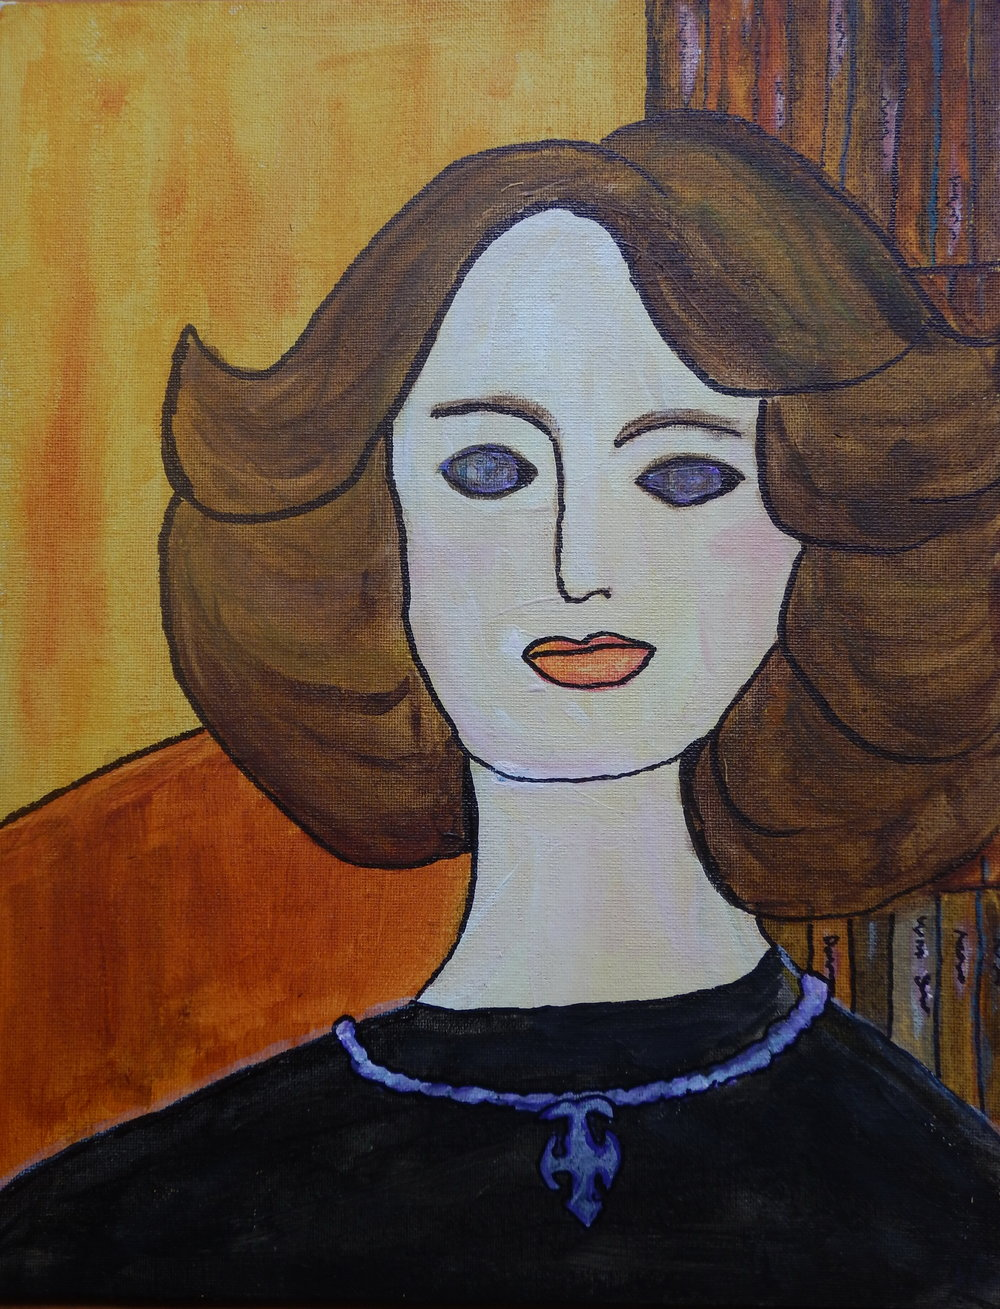 Self portrait in the style of Modigliani.